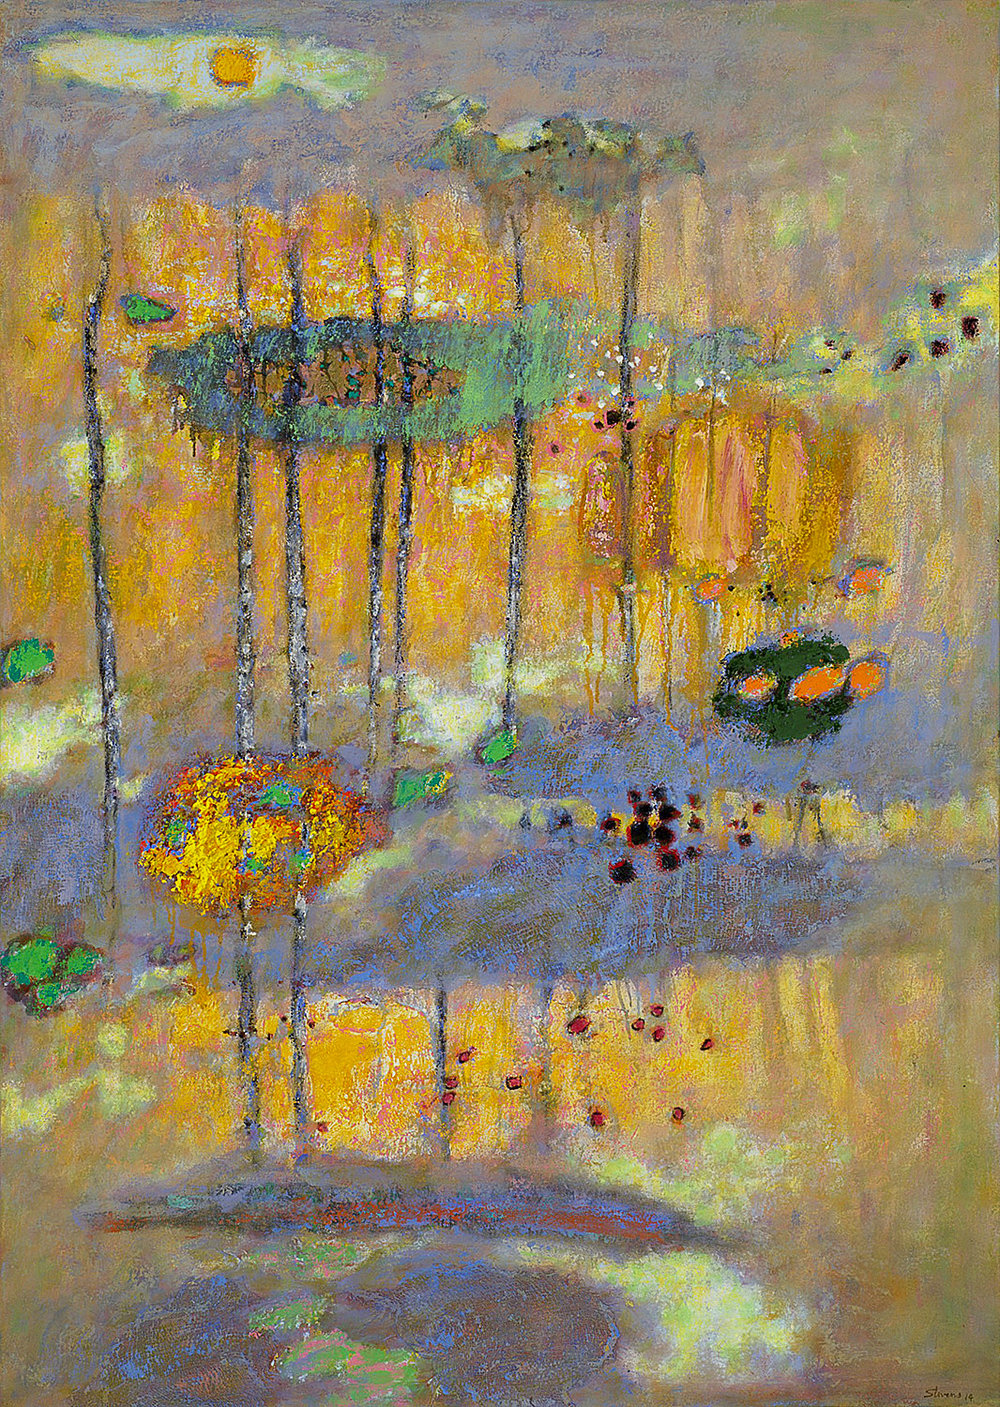 Shimmering Land  | oil on canvas | 45 x 32"